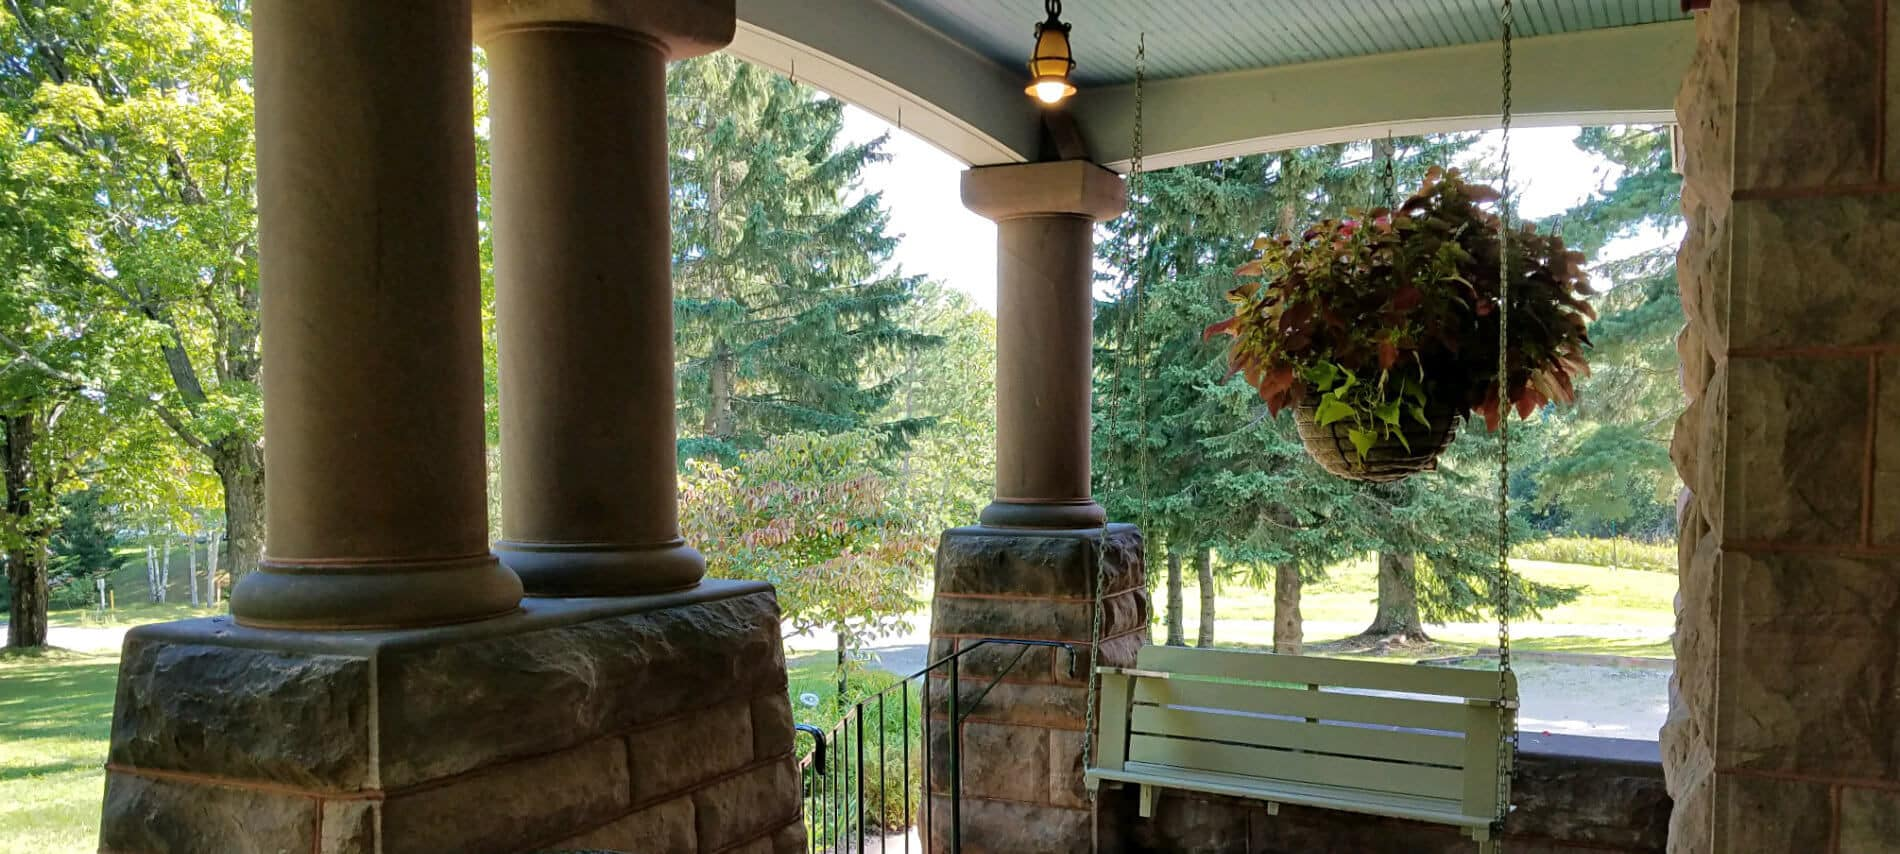 Covered porch with round pillars with stone bases, wooden porch swing, large hanging plant, all surrounded by trees